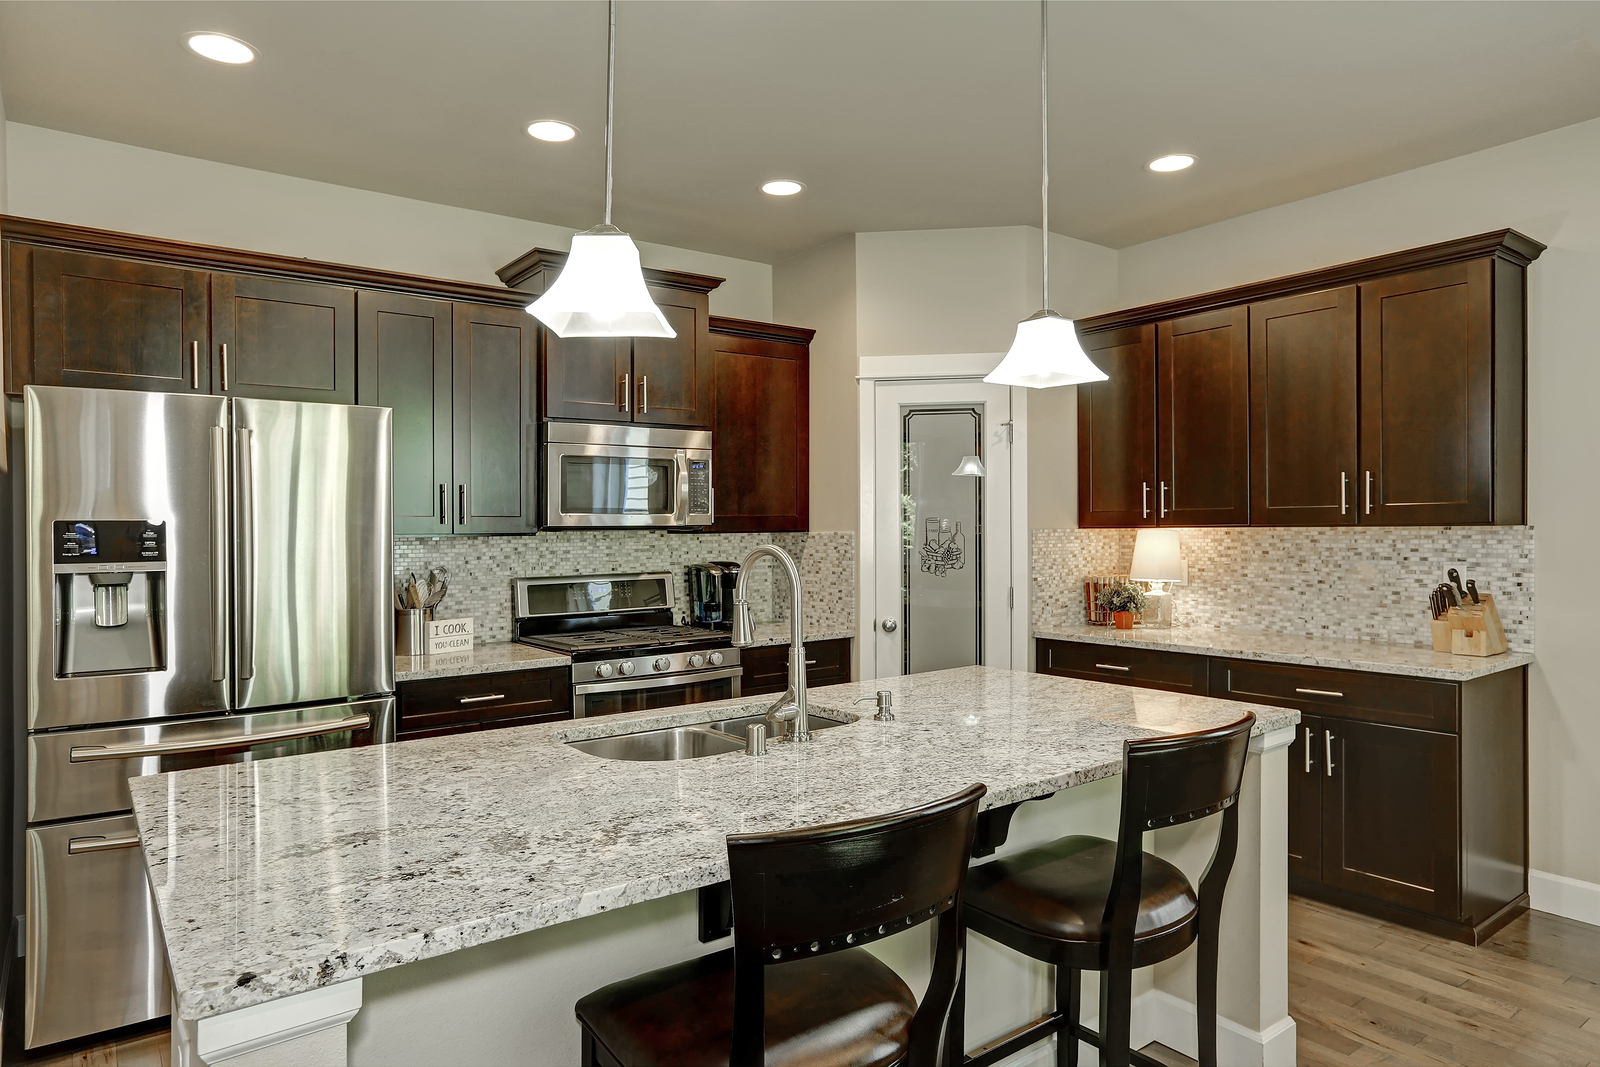 How To Have A StressFree Kitchen Remodel Grondin Builders - Free kitchen remodel contest